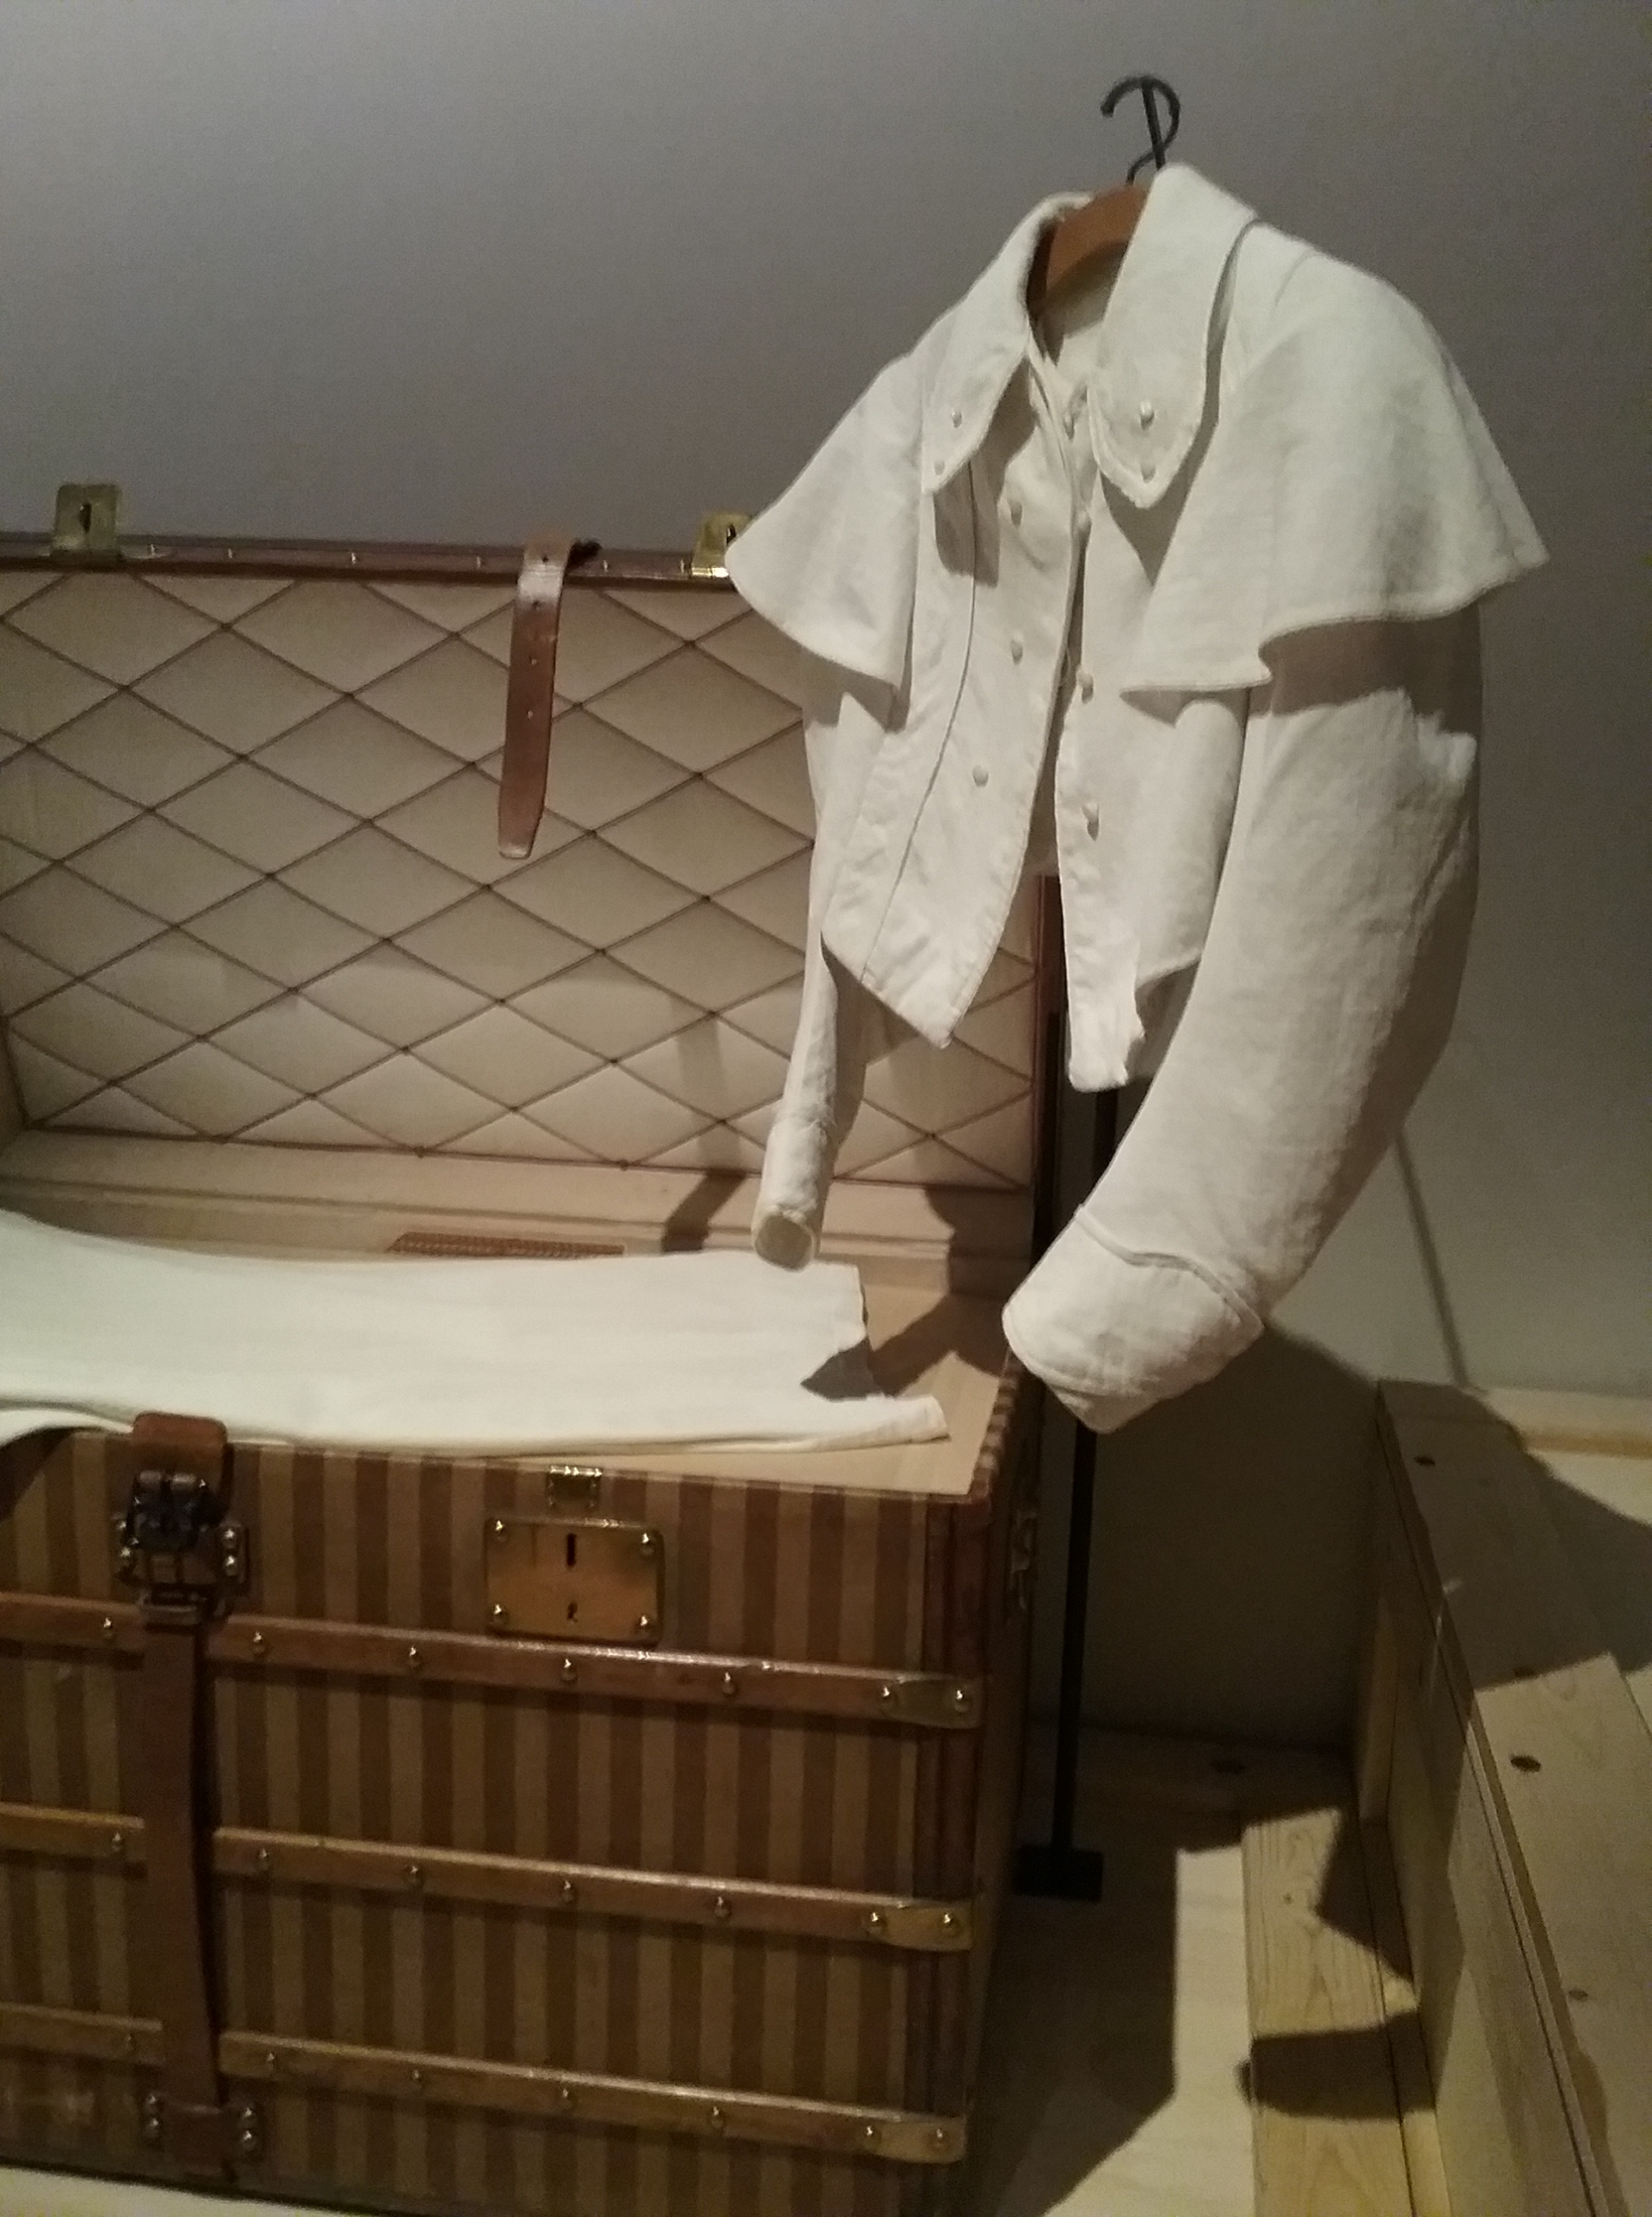 Early Louis Vuitton fashions -from the Volez, Voguez, Voyagez – Louis Vuitton exhibition in NYC -photo by @debrafrombrooklyn